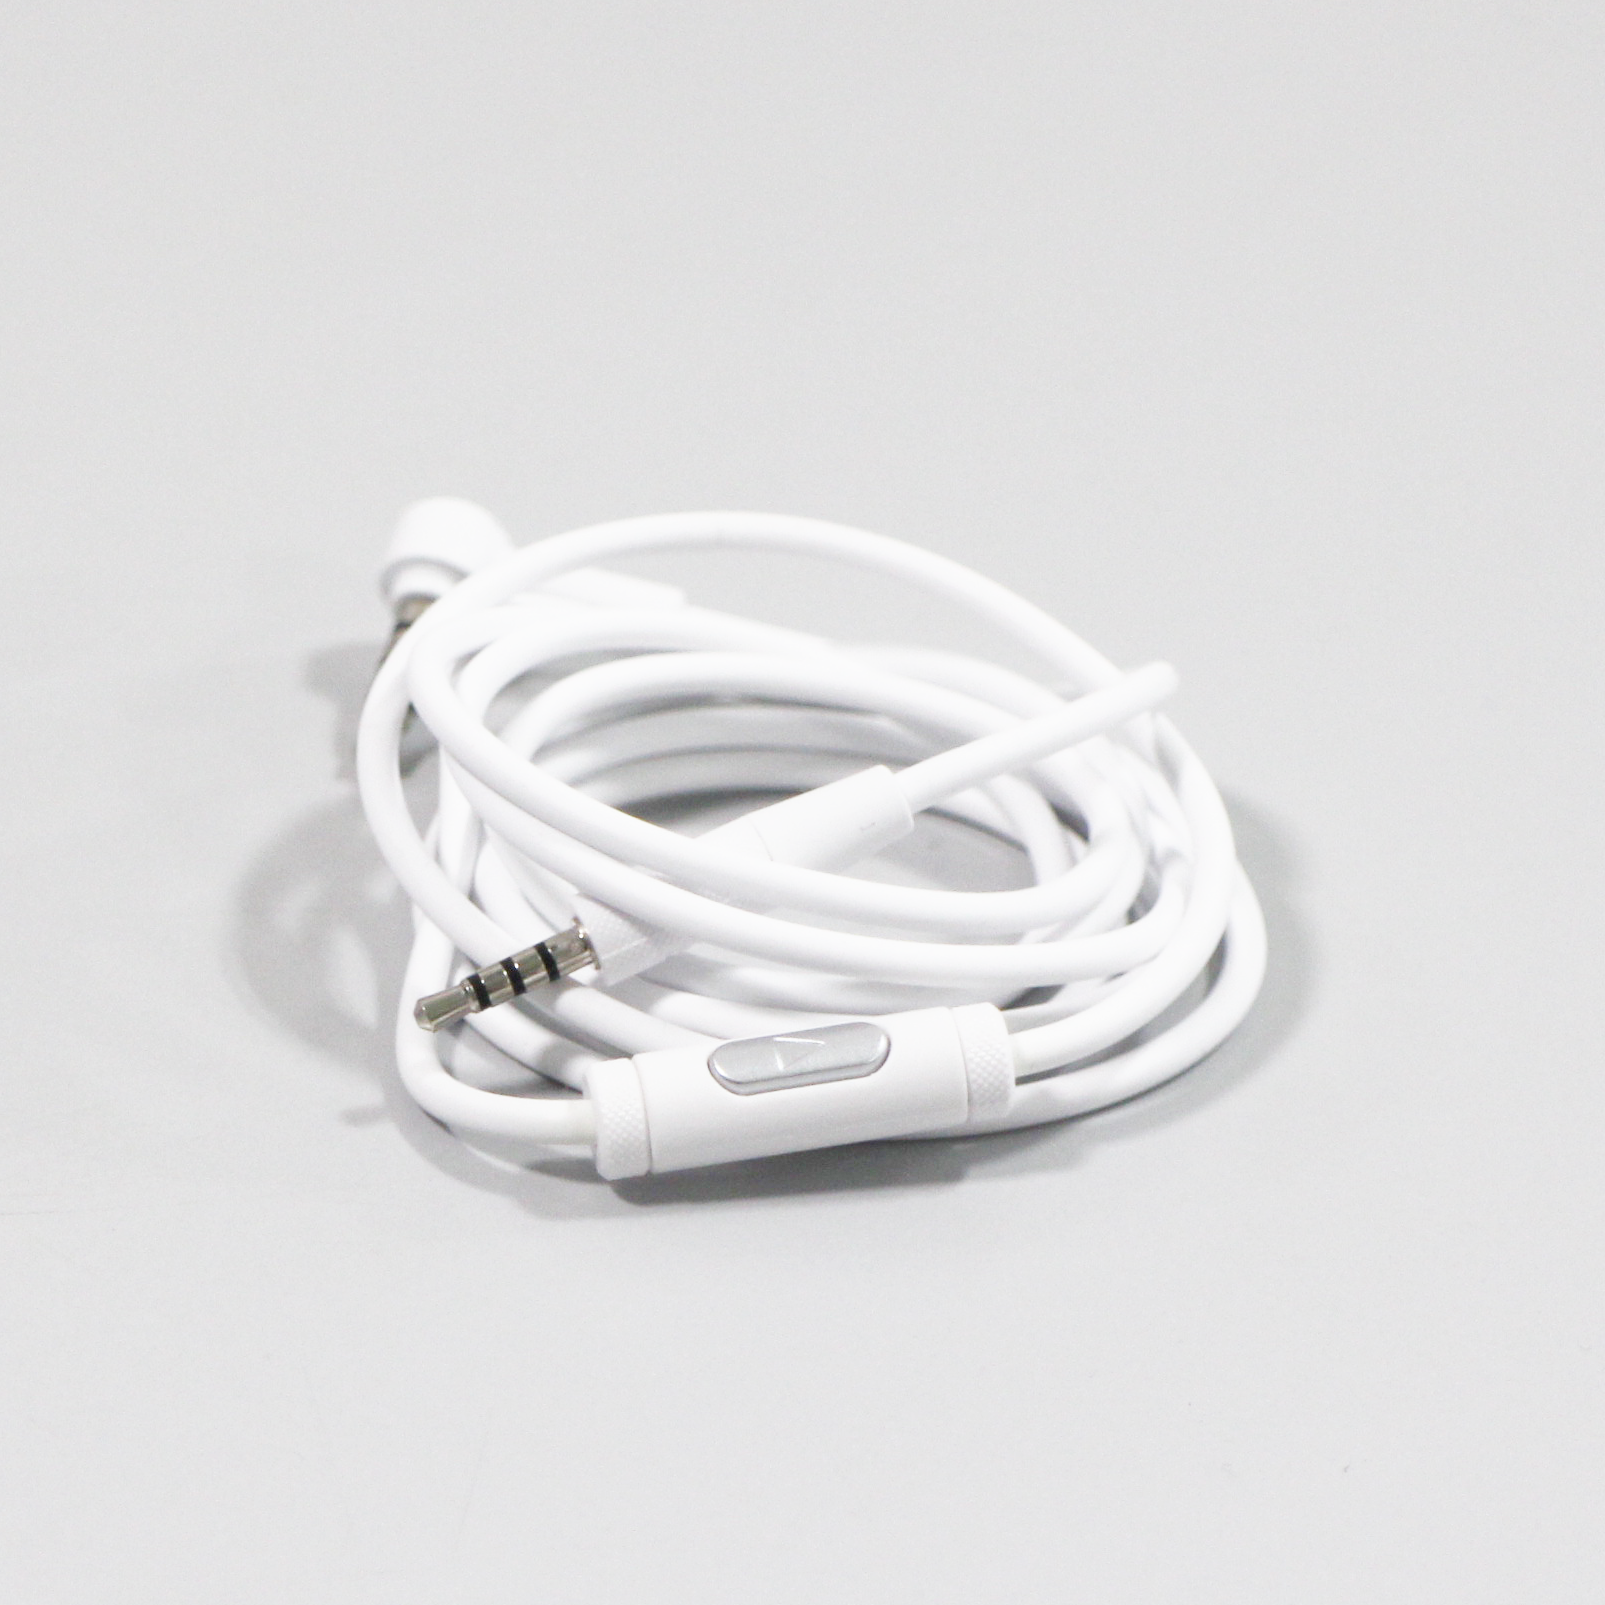 JBL E30 Cable with remote controller for smartphone - White - Hero